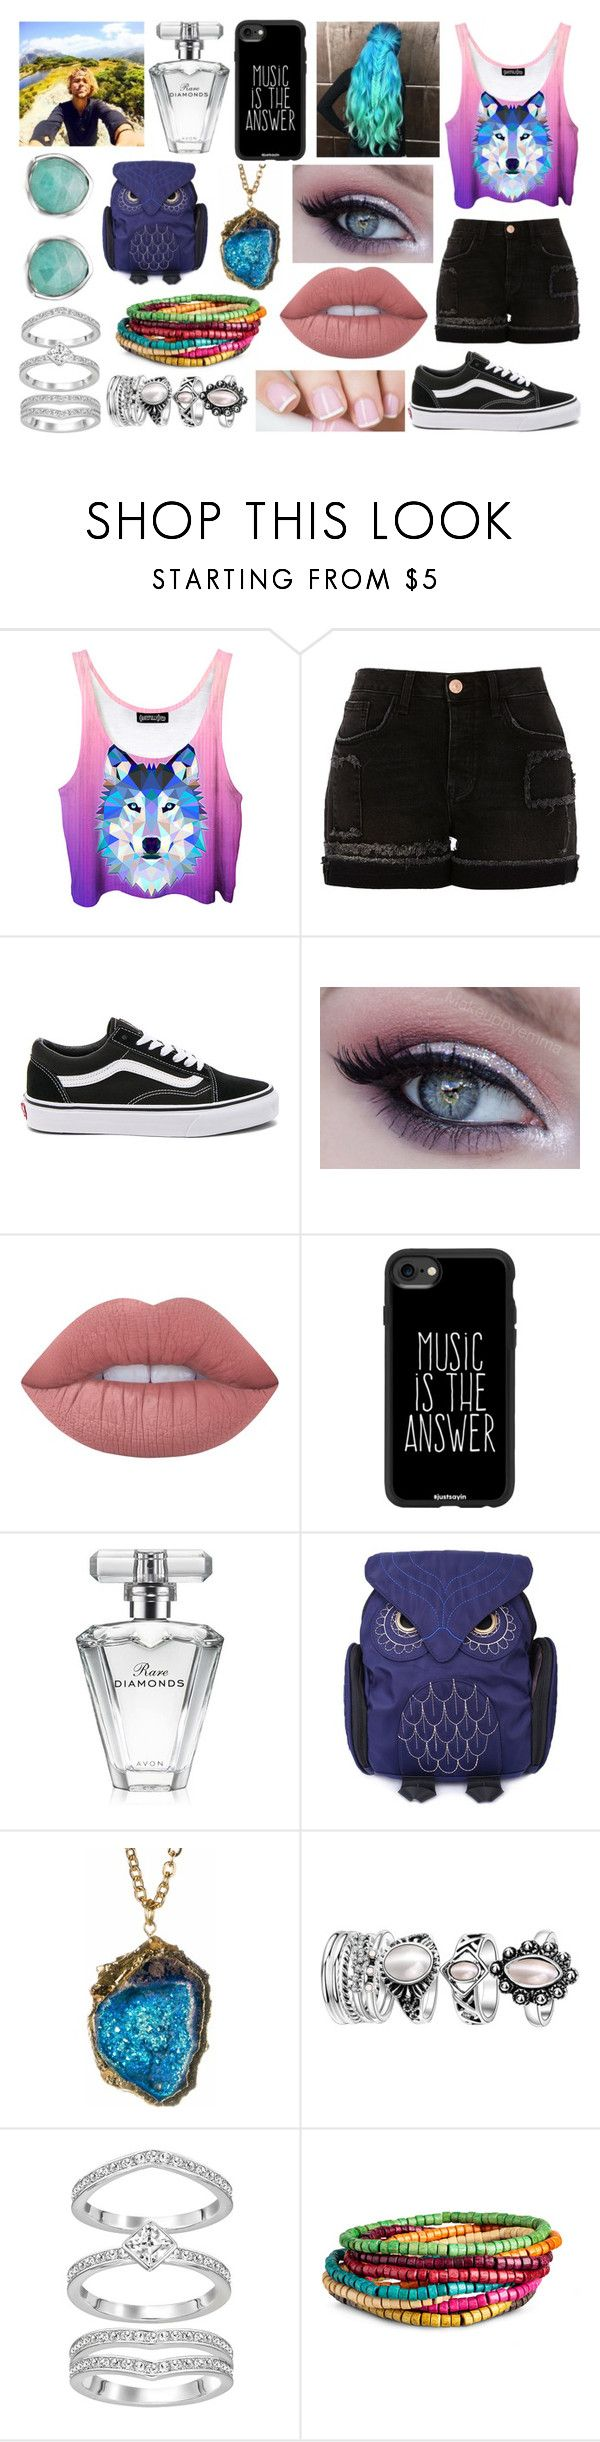 """""""Fair Date with Ashton Irwin"""" by kitty-styles-horan-biedka ❤ liked on Polyvore featuring Handle, River Island, Vans, Lime Crime, Casetify, Avon and Monica Vinader"""